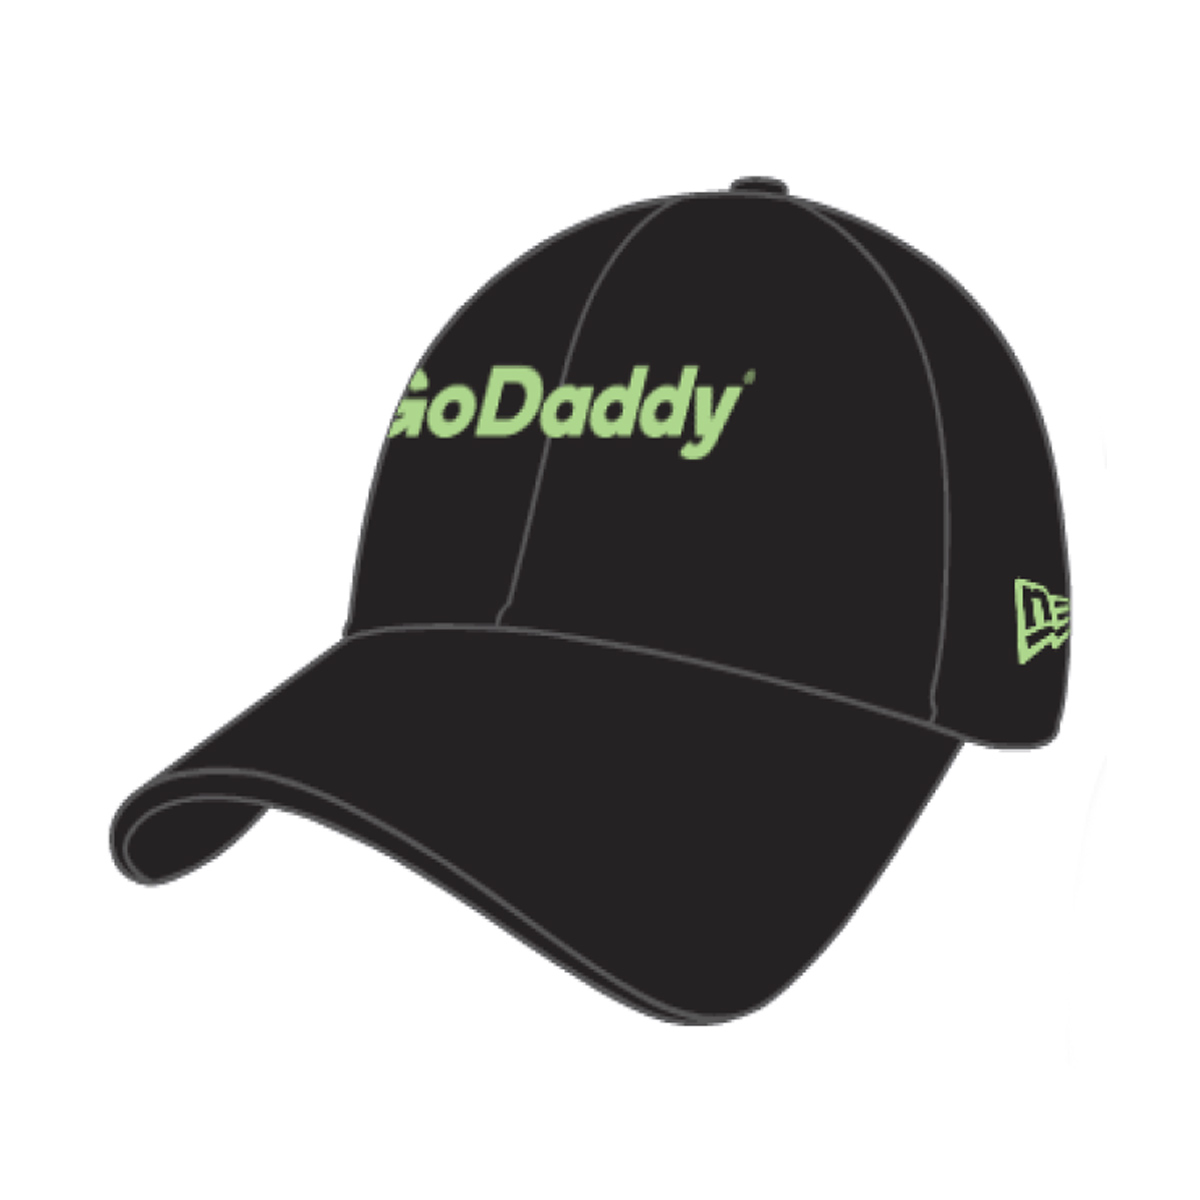 Danica Patrick 2018 Indy 500 New Era 9FORTY Hat